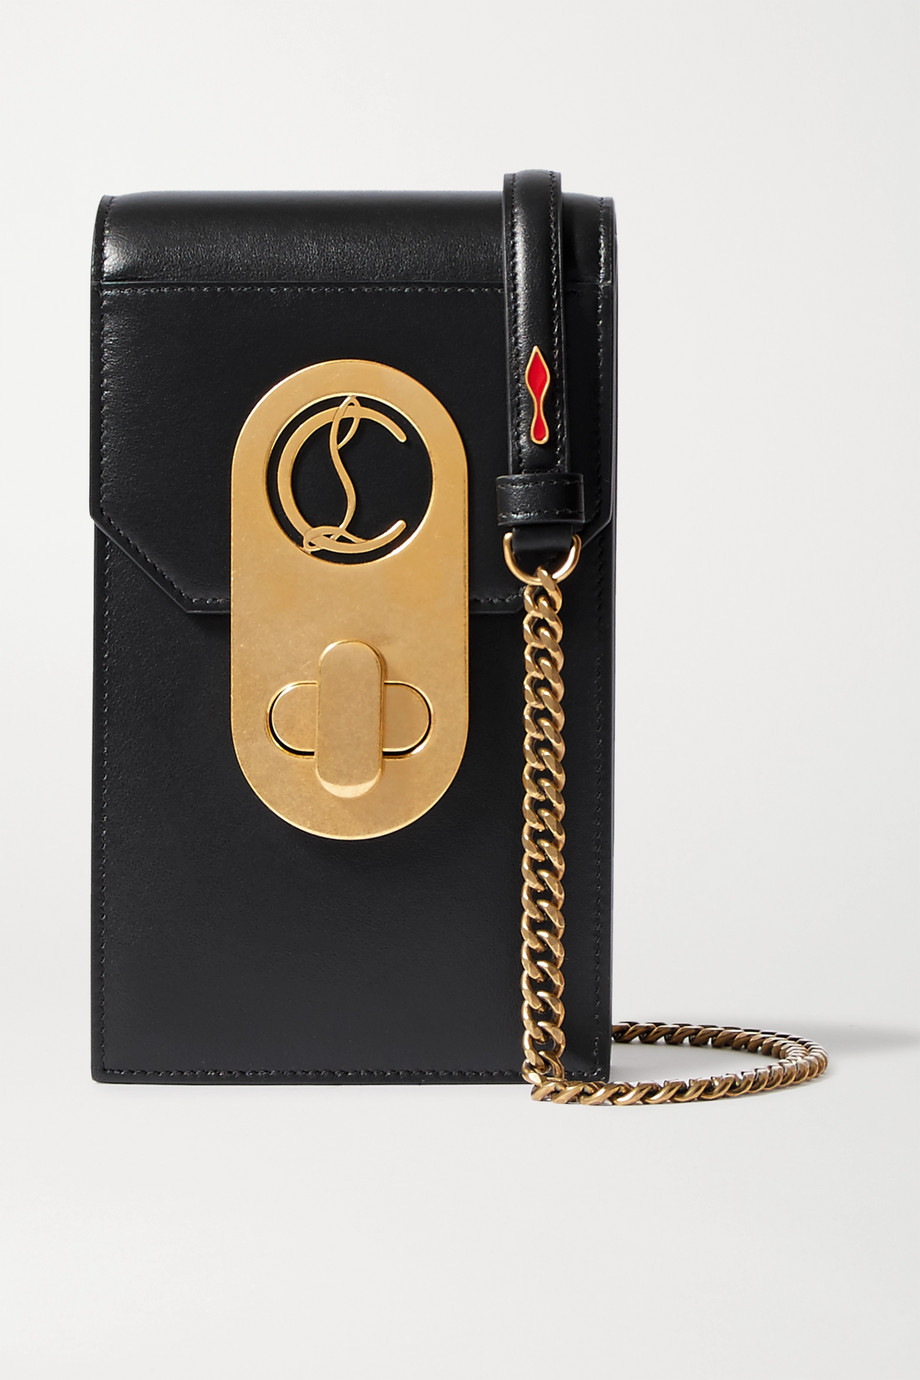 Christian Louboutin Elisa embellished leather phone case